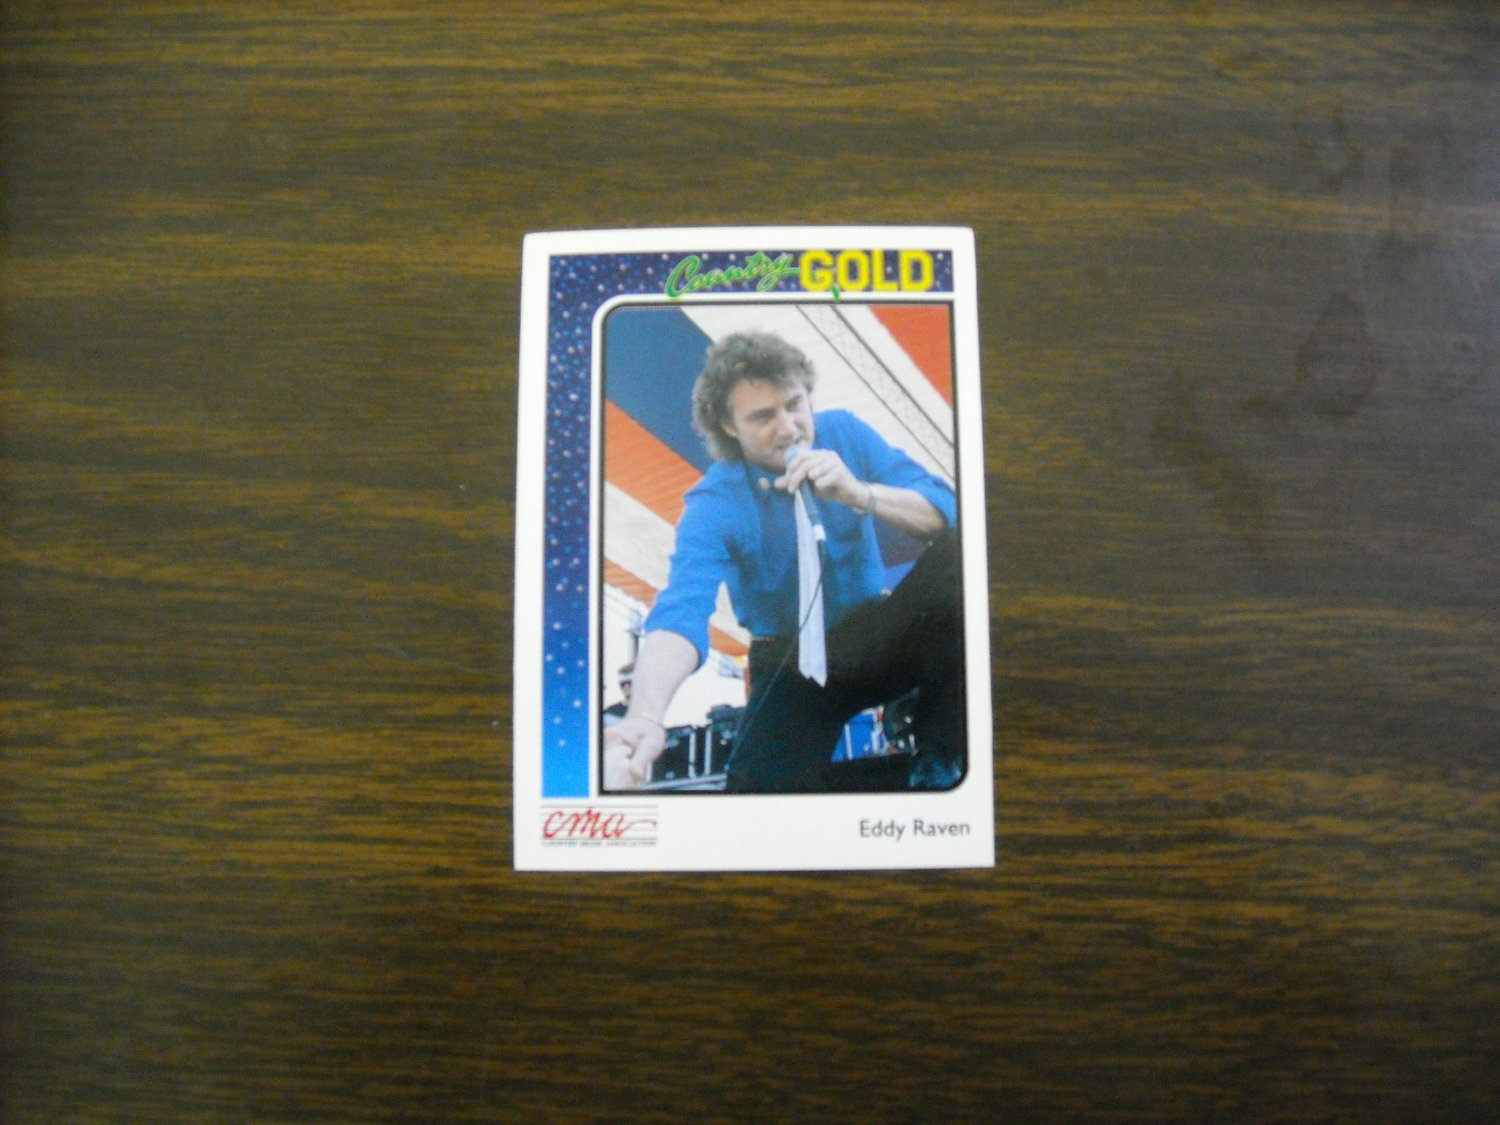 Eddy Raven Country Gold Card No. 36 - CMA Country Music Association 1992 Sterling Cards